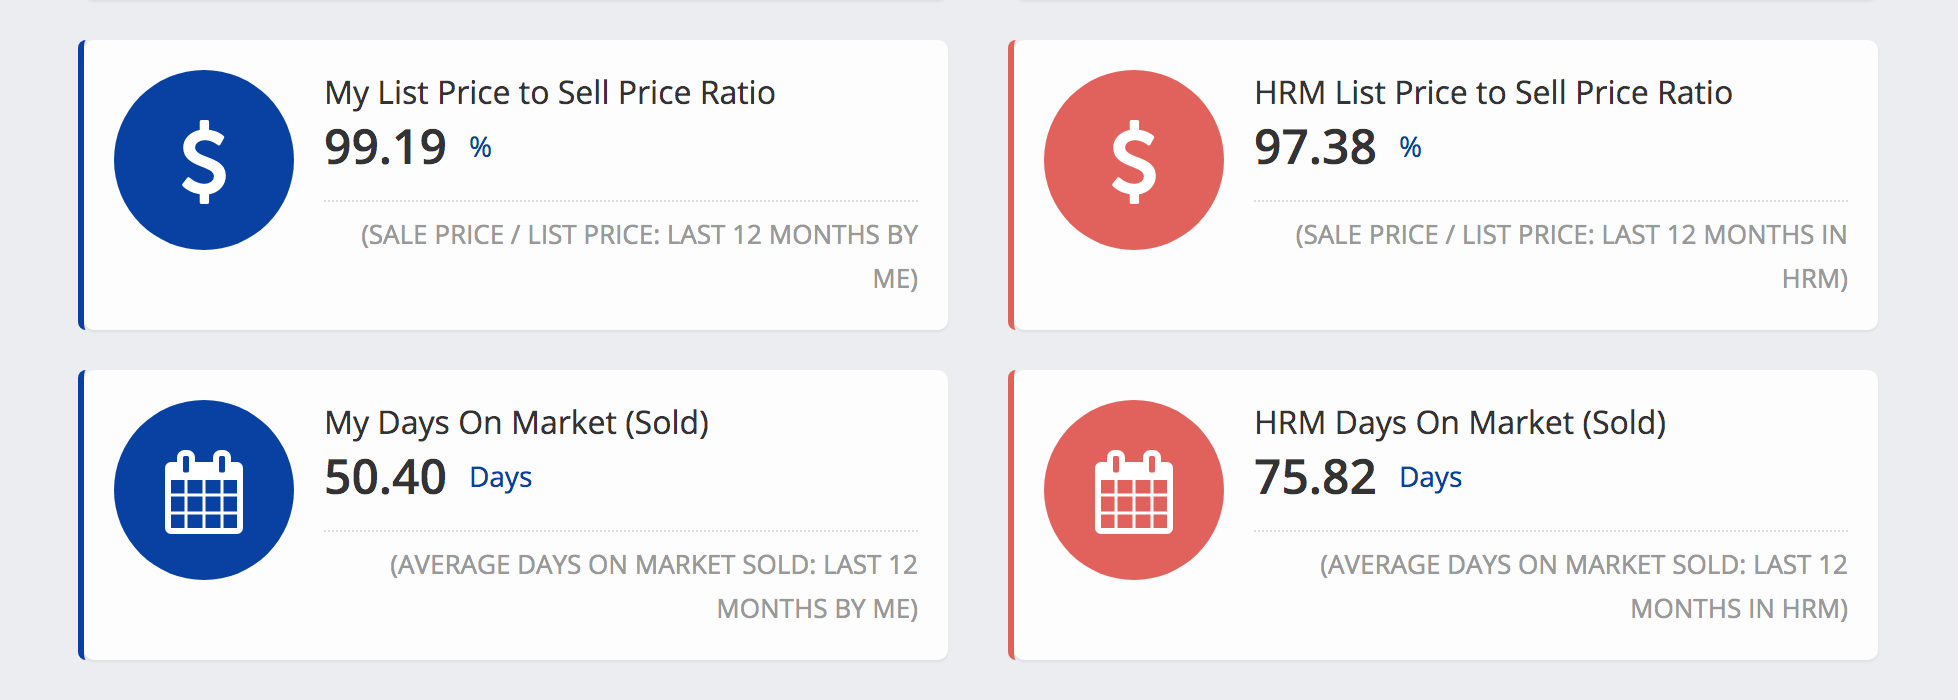 Halifax Real Estate Statistics September 2019 | MLS® data from NSAR | Merv Edinger sales statistics